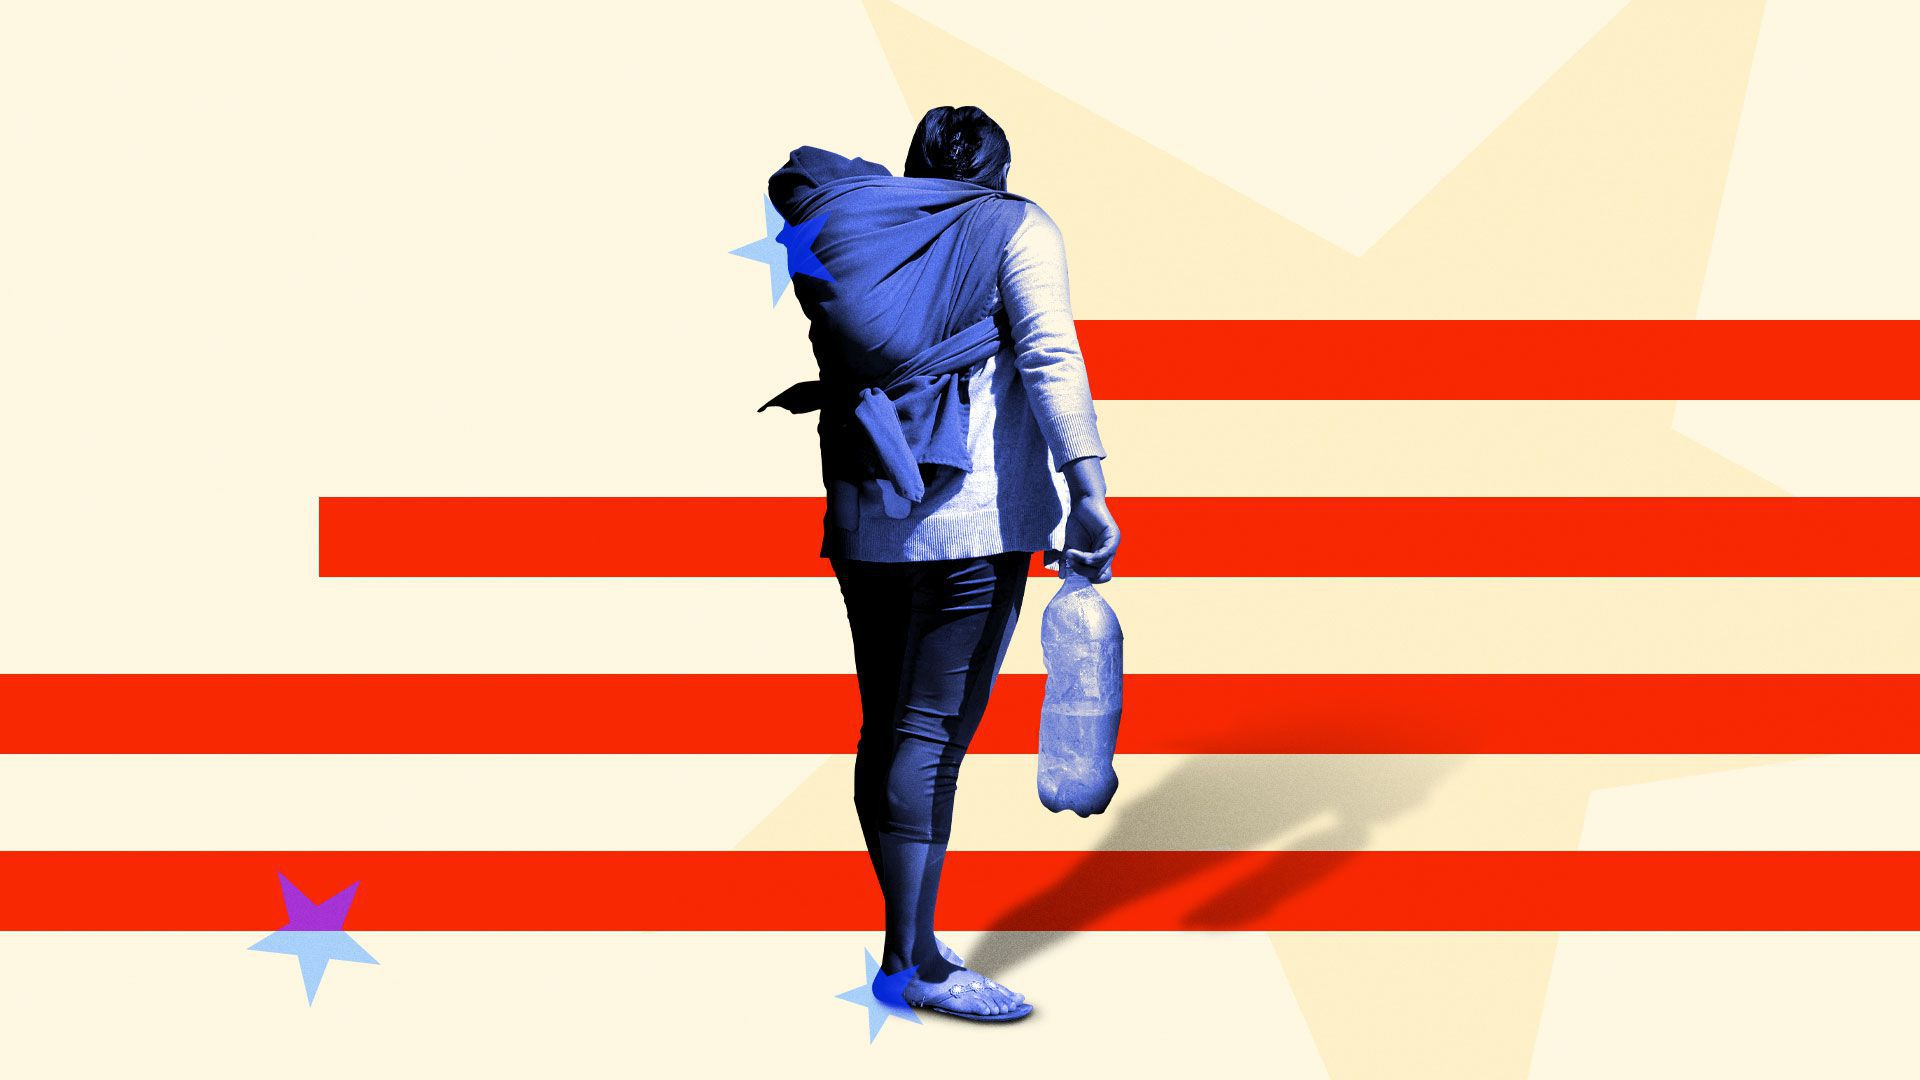 Illustration of a migrant woman with her young child walking towards stars and stripes